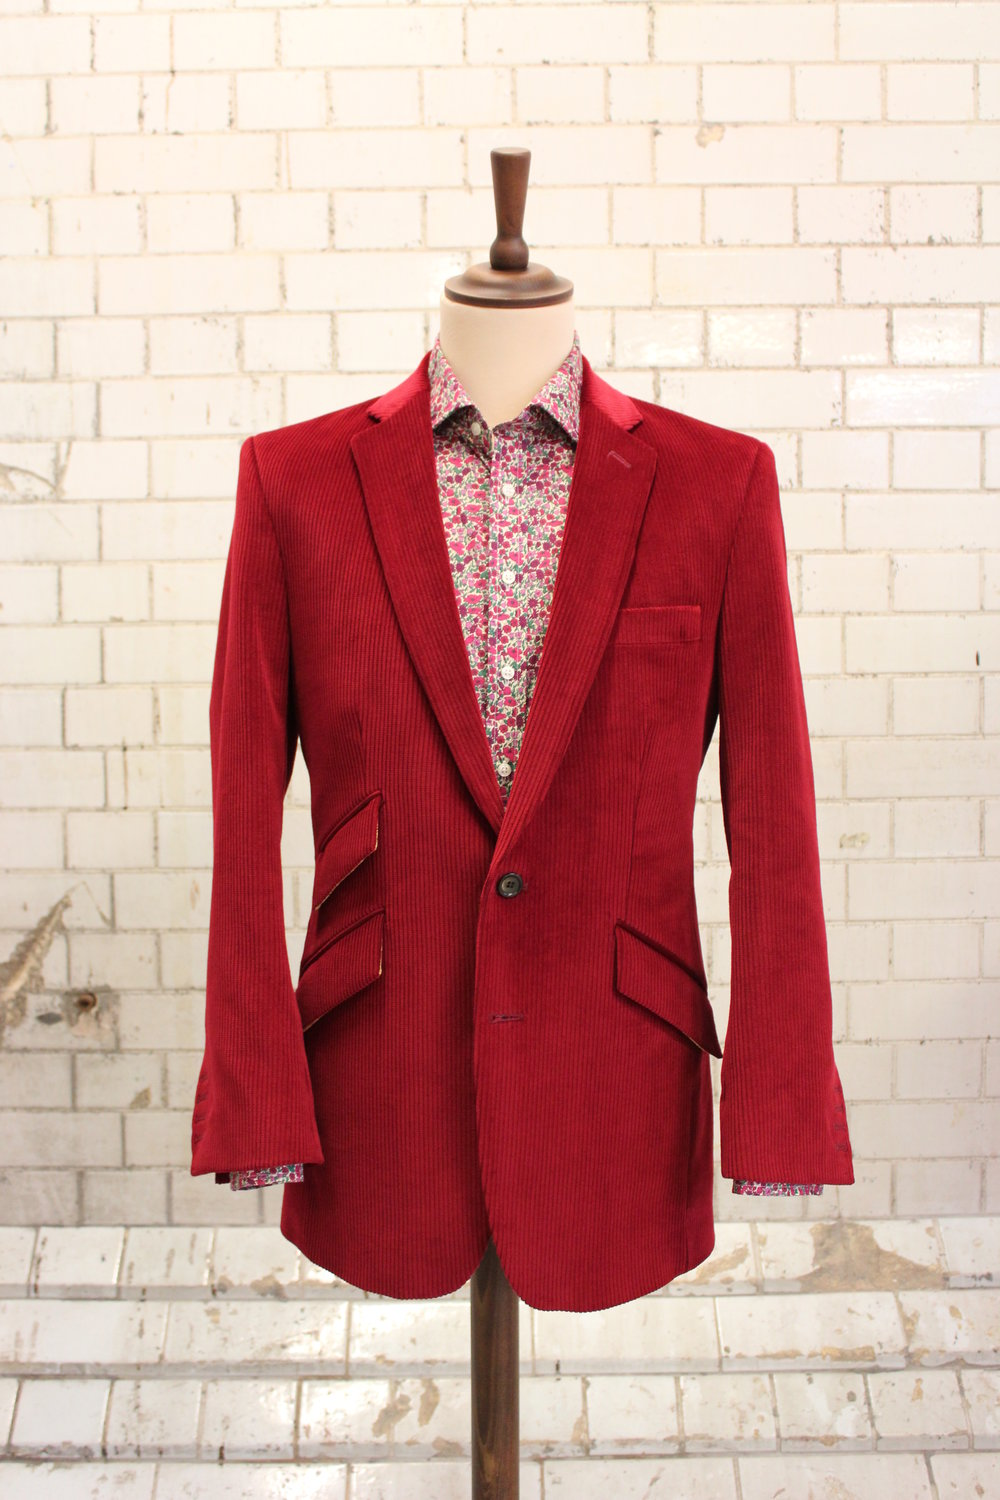 red-cord-dugdale-liberty-print-british-all-uk-made-cord-menswear-suit-shirt.JPG